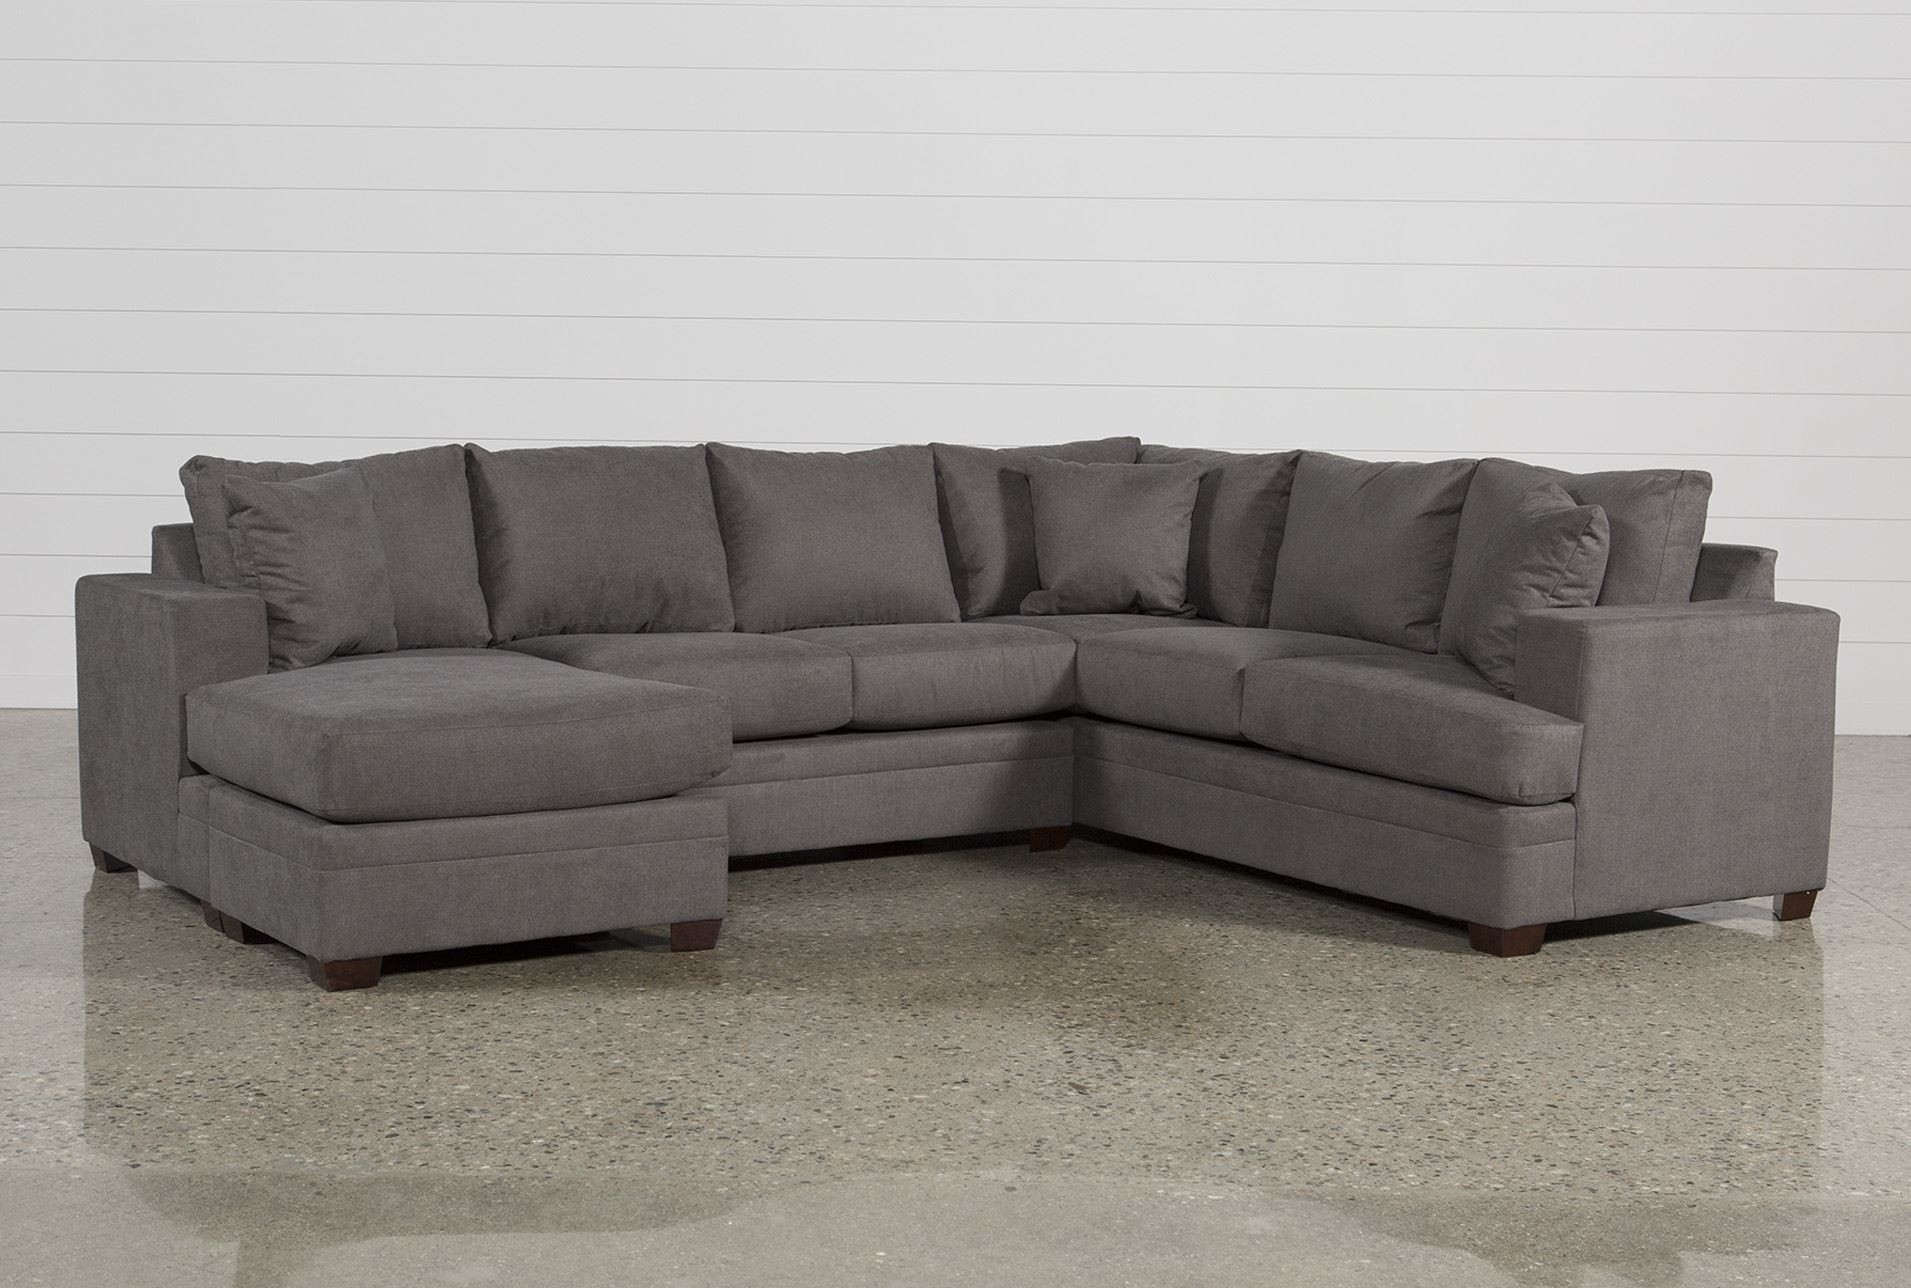 Living Spaces Leather Sectional - Implantologiabogota.co for Tatum Dark Grey 2 Piece Sectionals With Laf Chaise (Image 15 of 30)